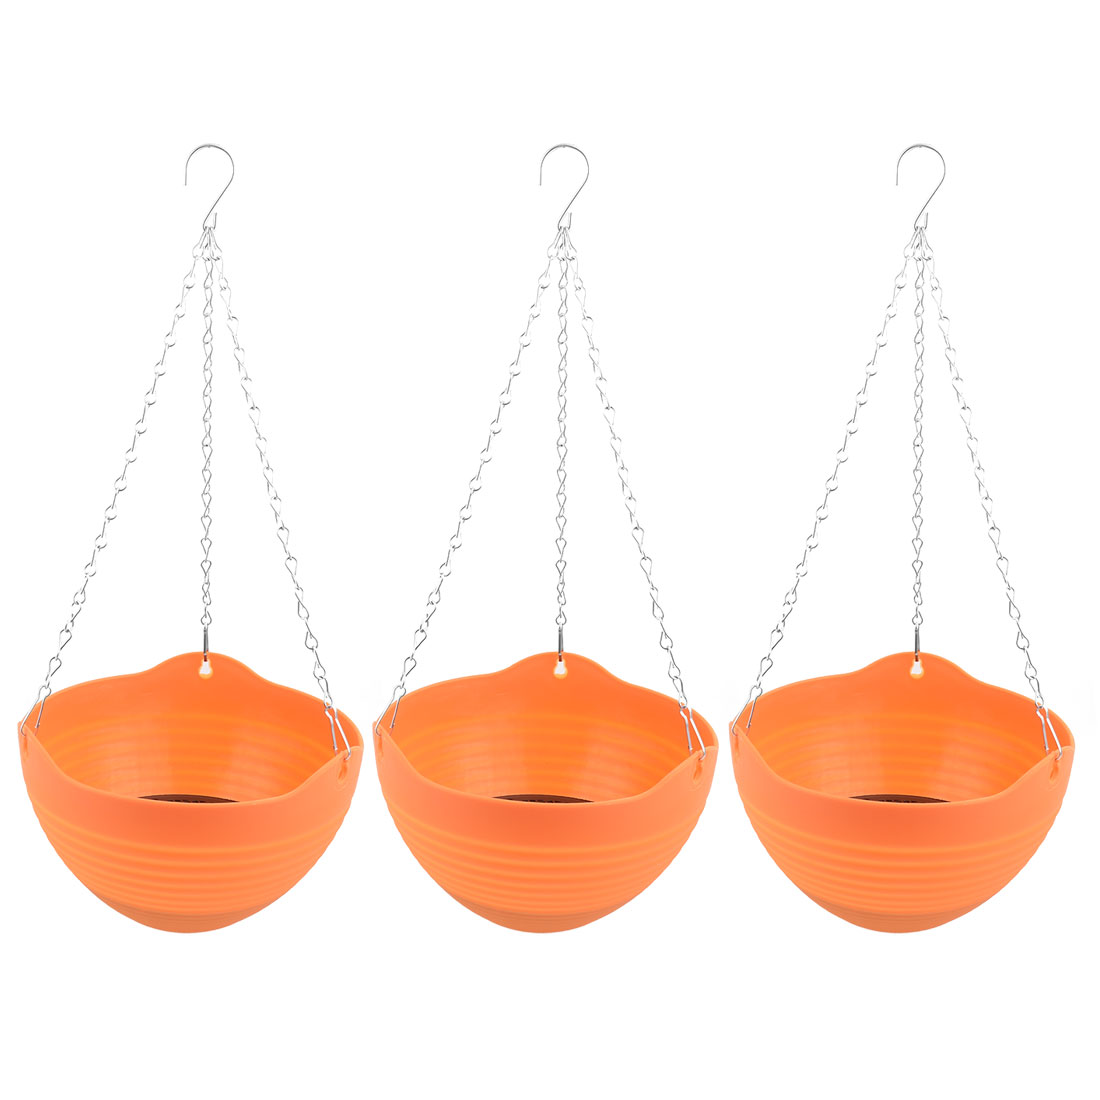 Parterre Plastic DIY Chain Hanging Flower Orchid Cactus Pot Holder Orange 3pcs